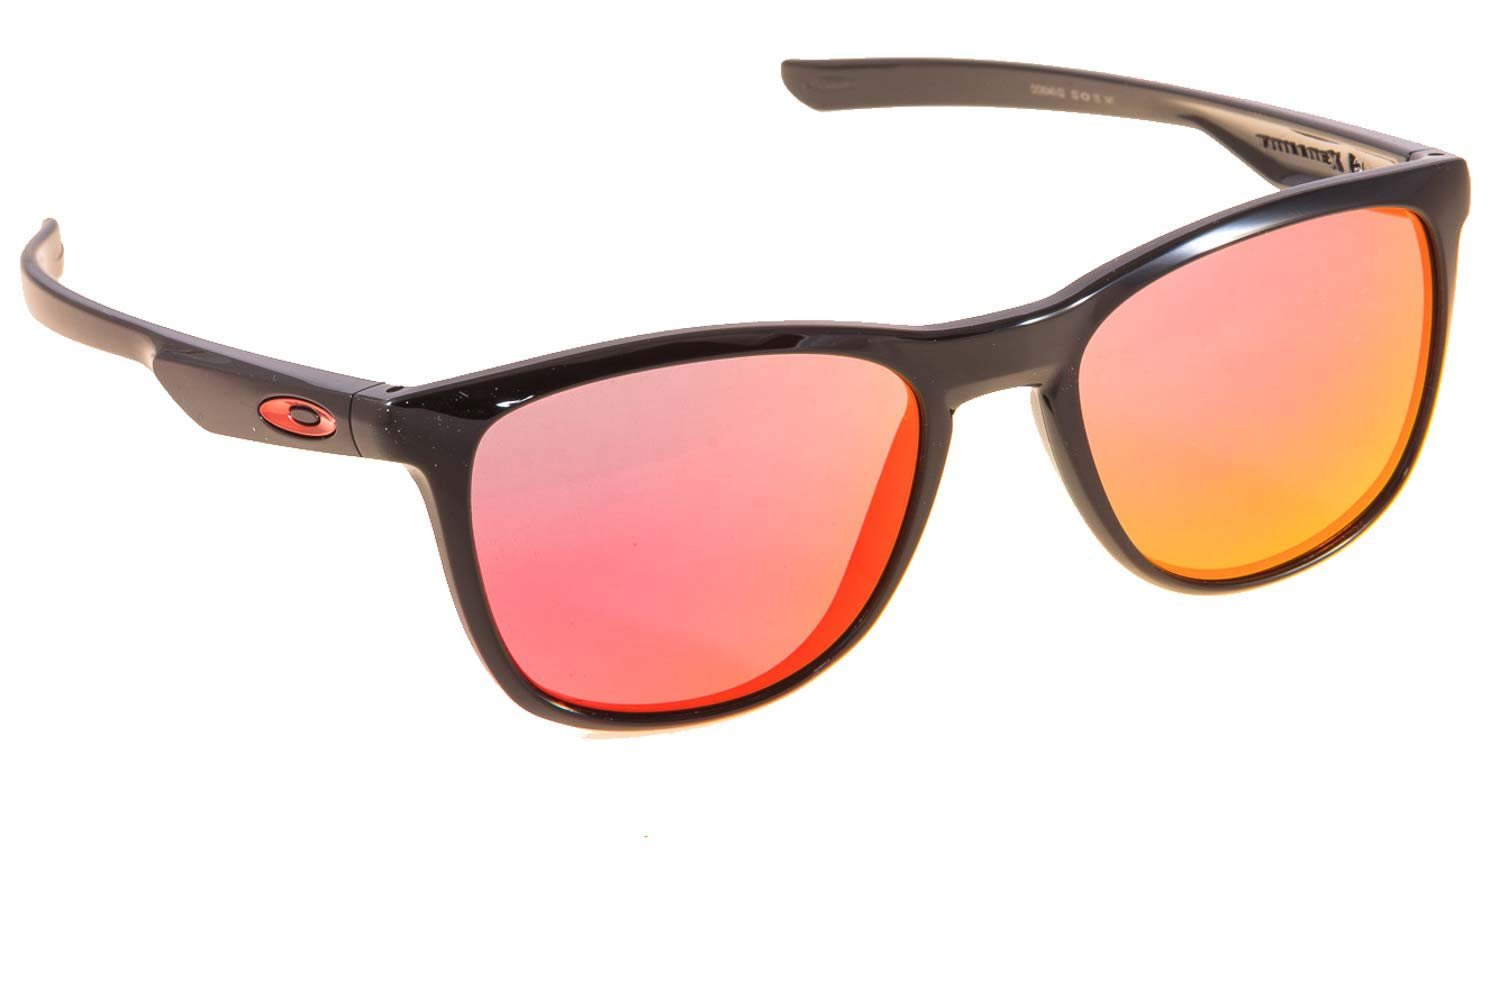 ef8869d1c OAKLEY TRILLBE X 9340 02 BLACK RUBY IR 52 | SUNGLASSES Sport EyeShop